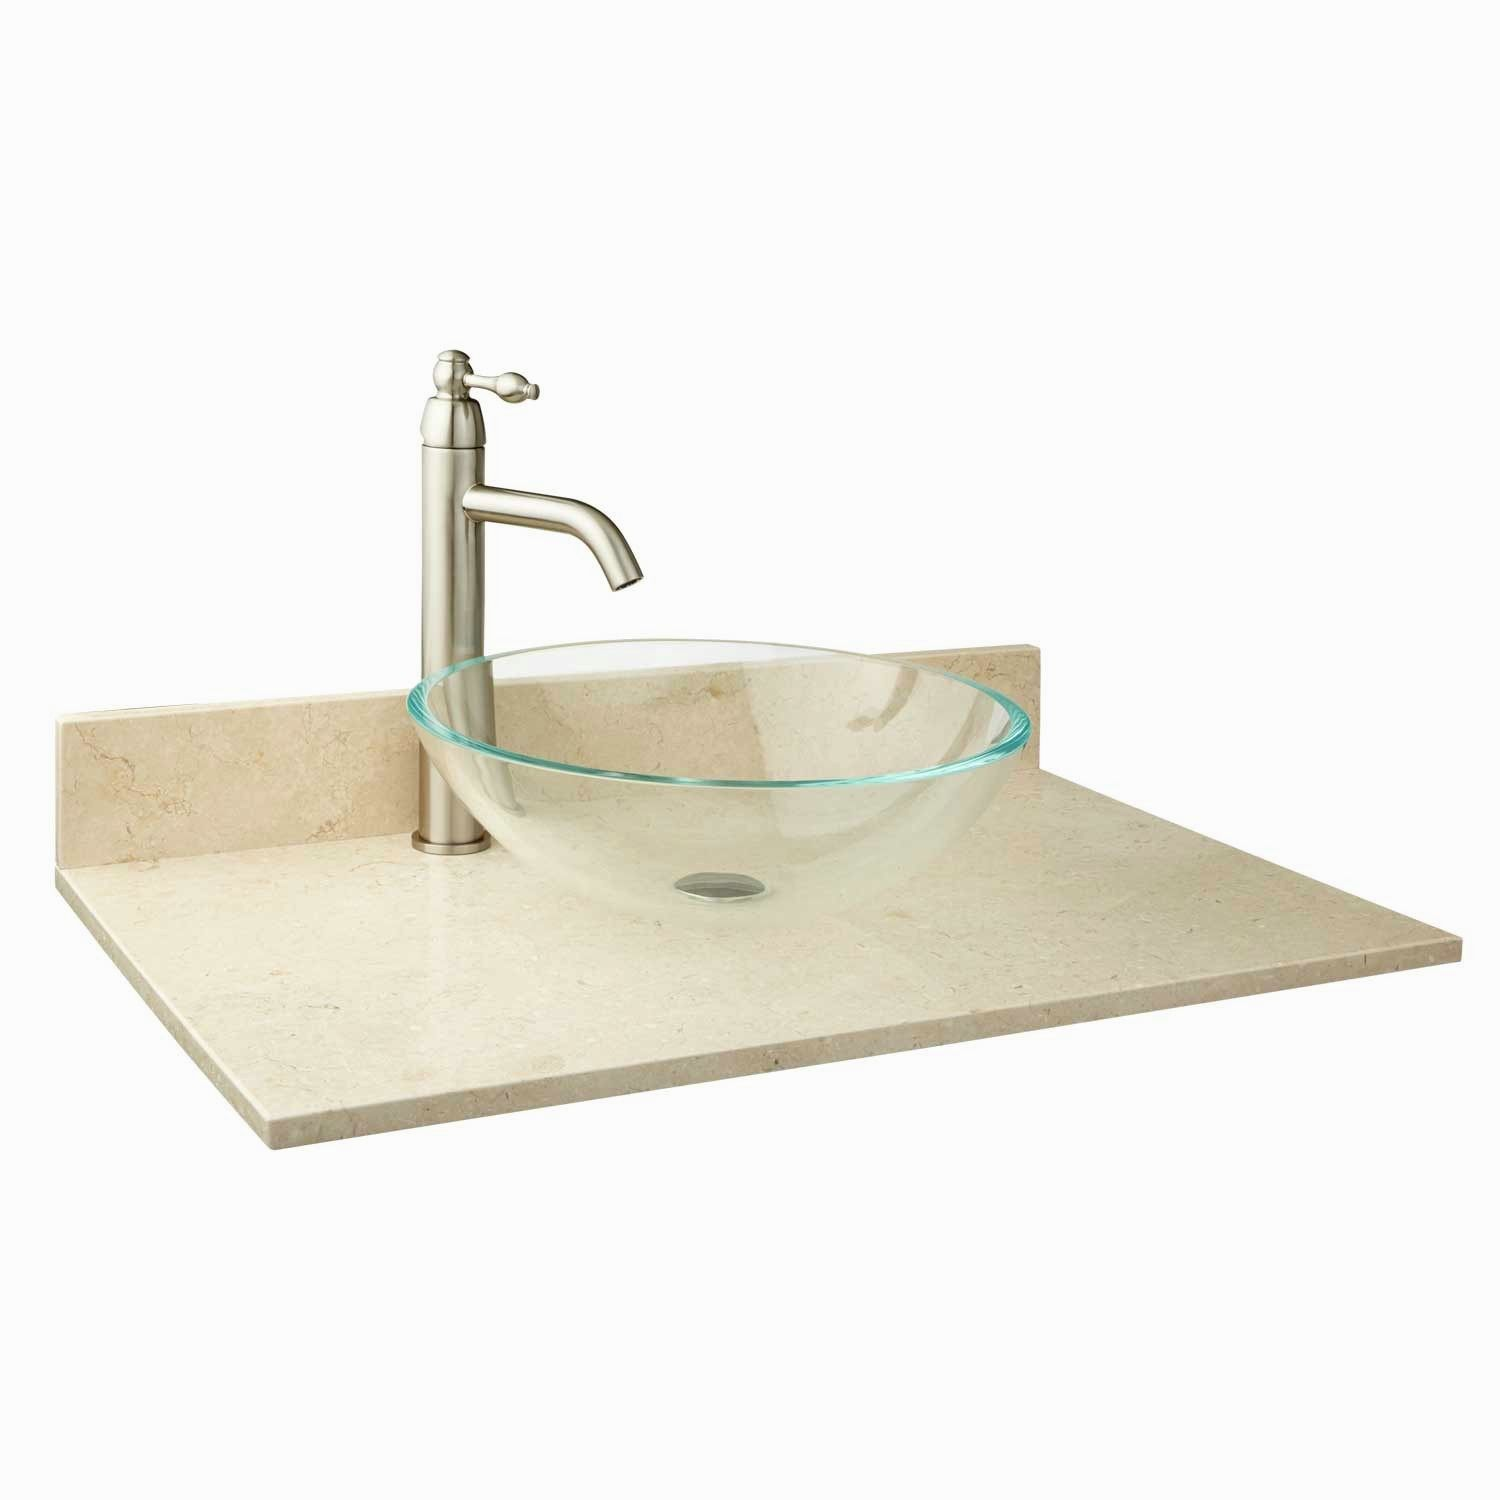 innovative home sinks of s vanity on ada tag sink bathroom vanities without and intended small lowes fullsize dazzling depot